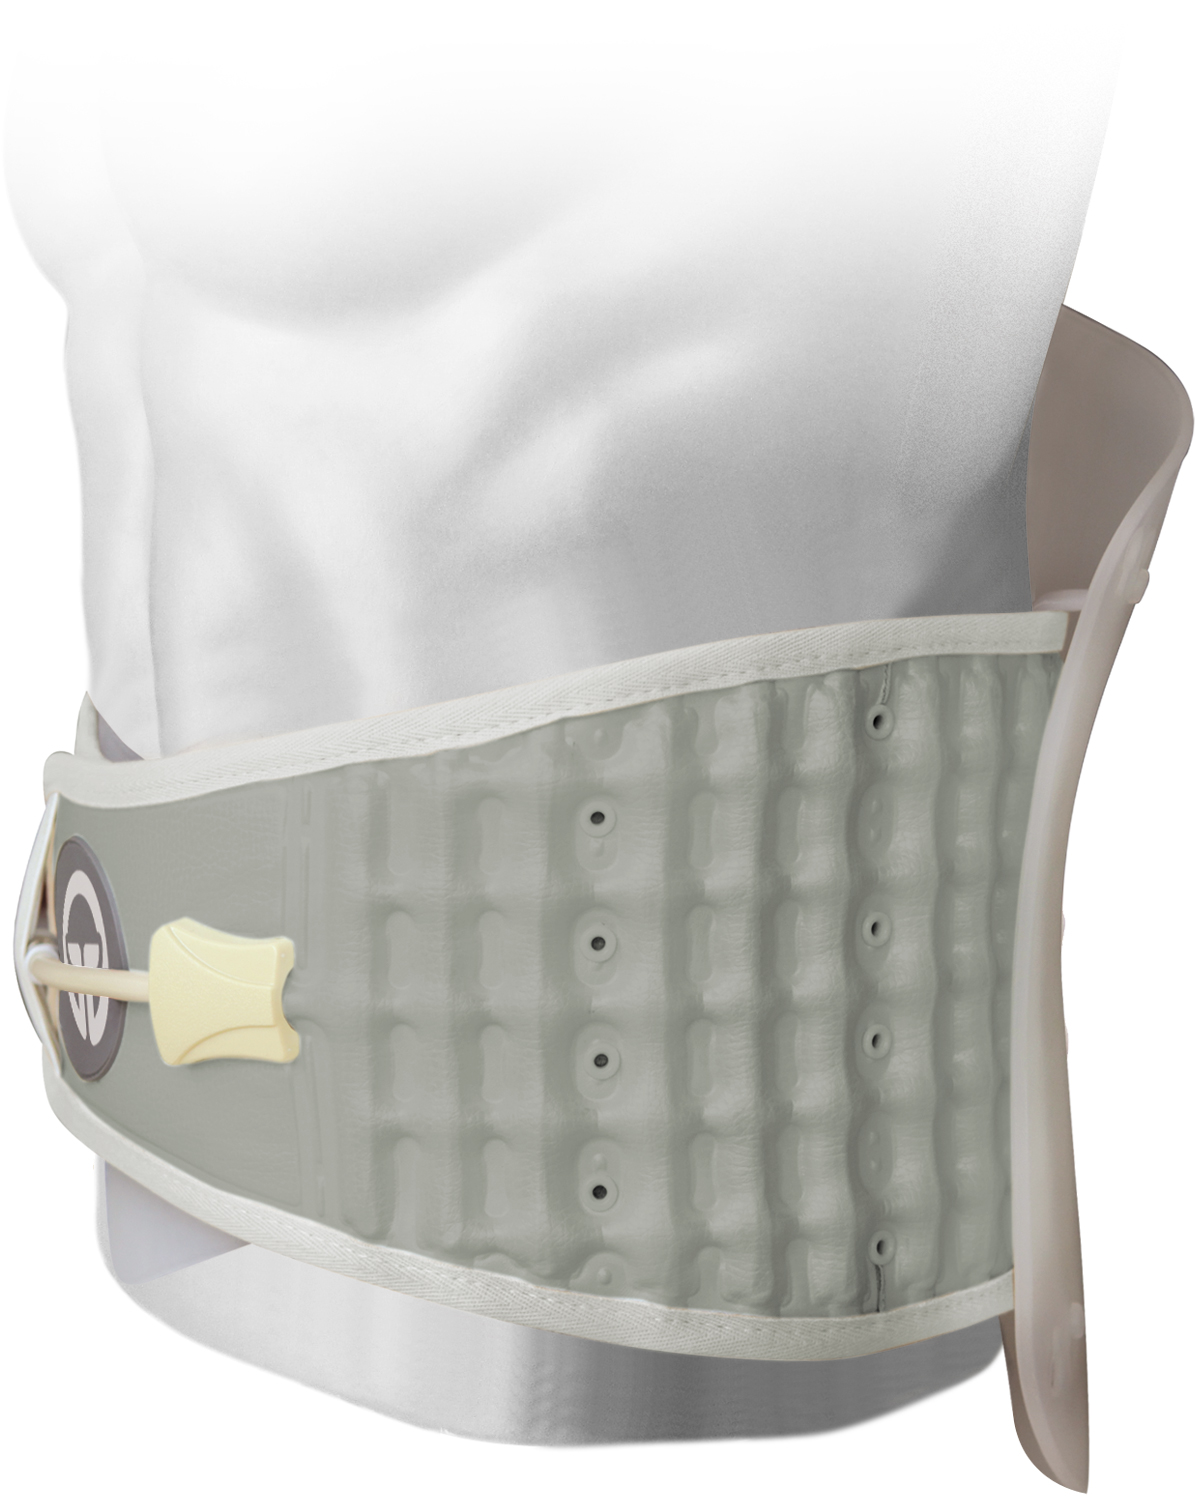 Theratrac LSO – Lumbar Decompression system with a posterior rigid support system